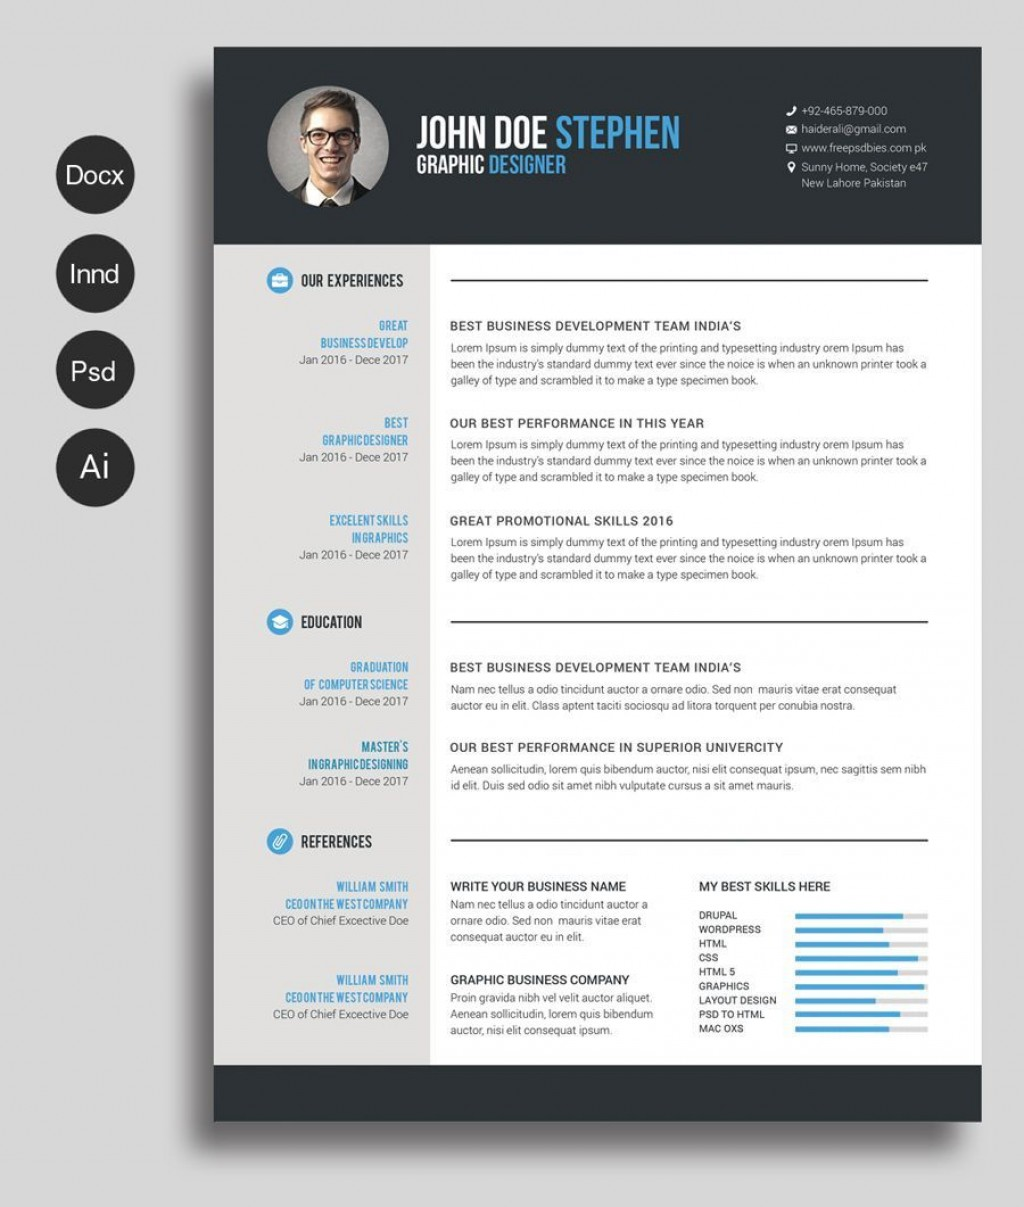 001 Best Professional Resume Template Free Download Word Highest Clarity  Cv 2020 Format With PhotoLarge